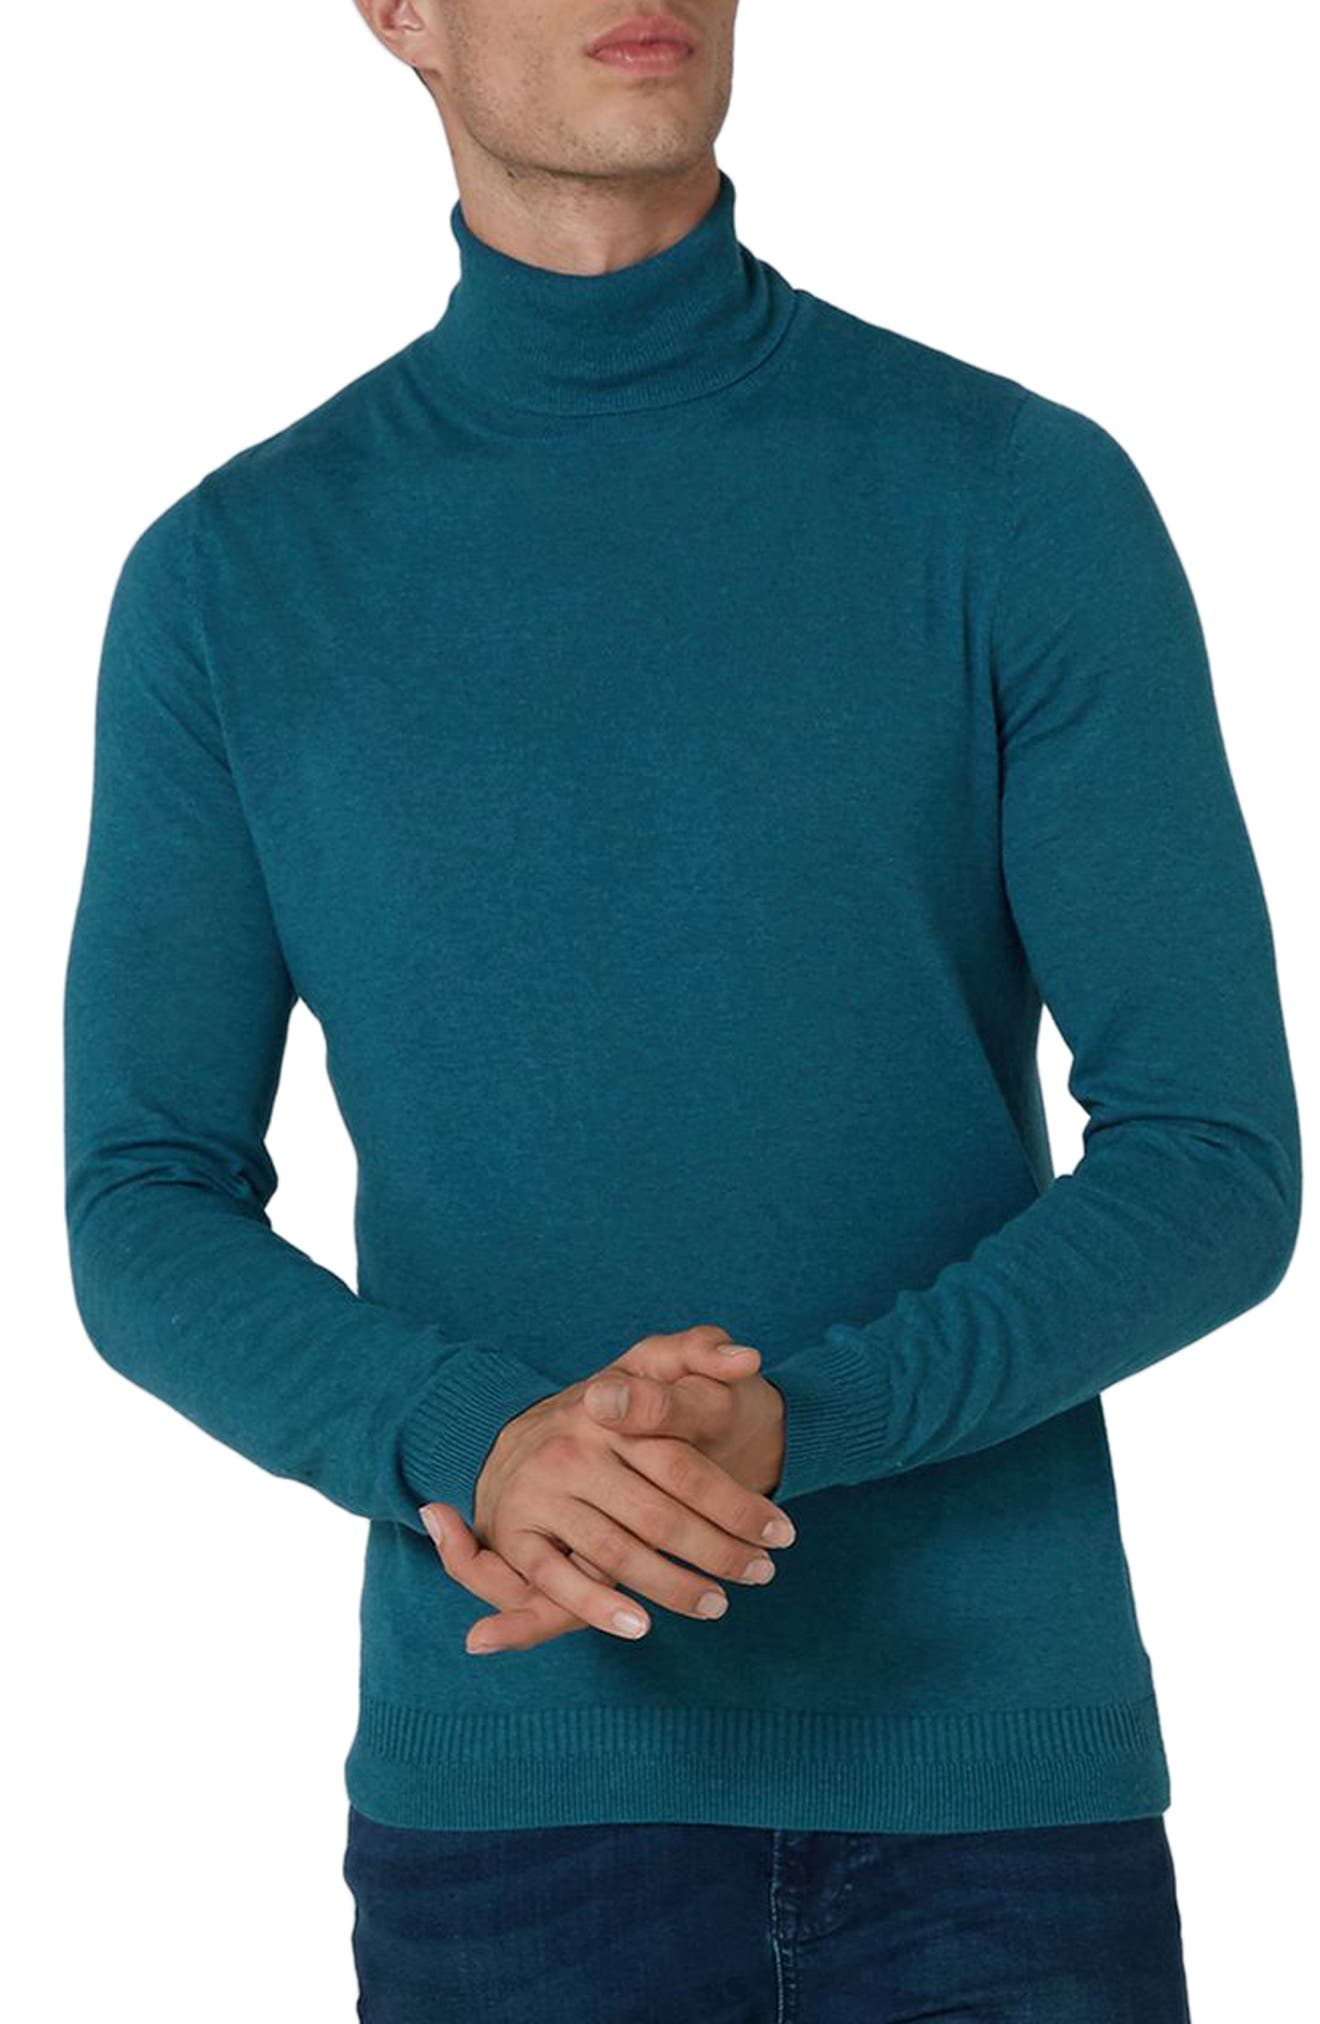 Cotton Turtleneck Sweater,                             Main thumbnail 1, color,                             Blue